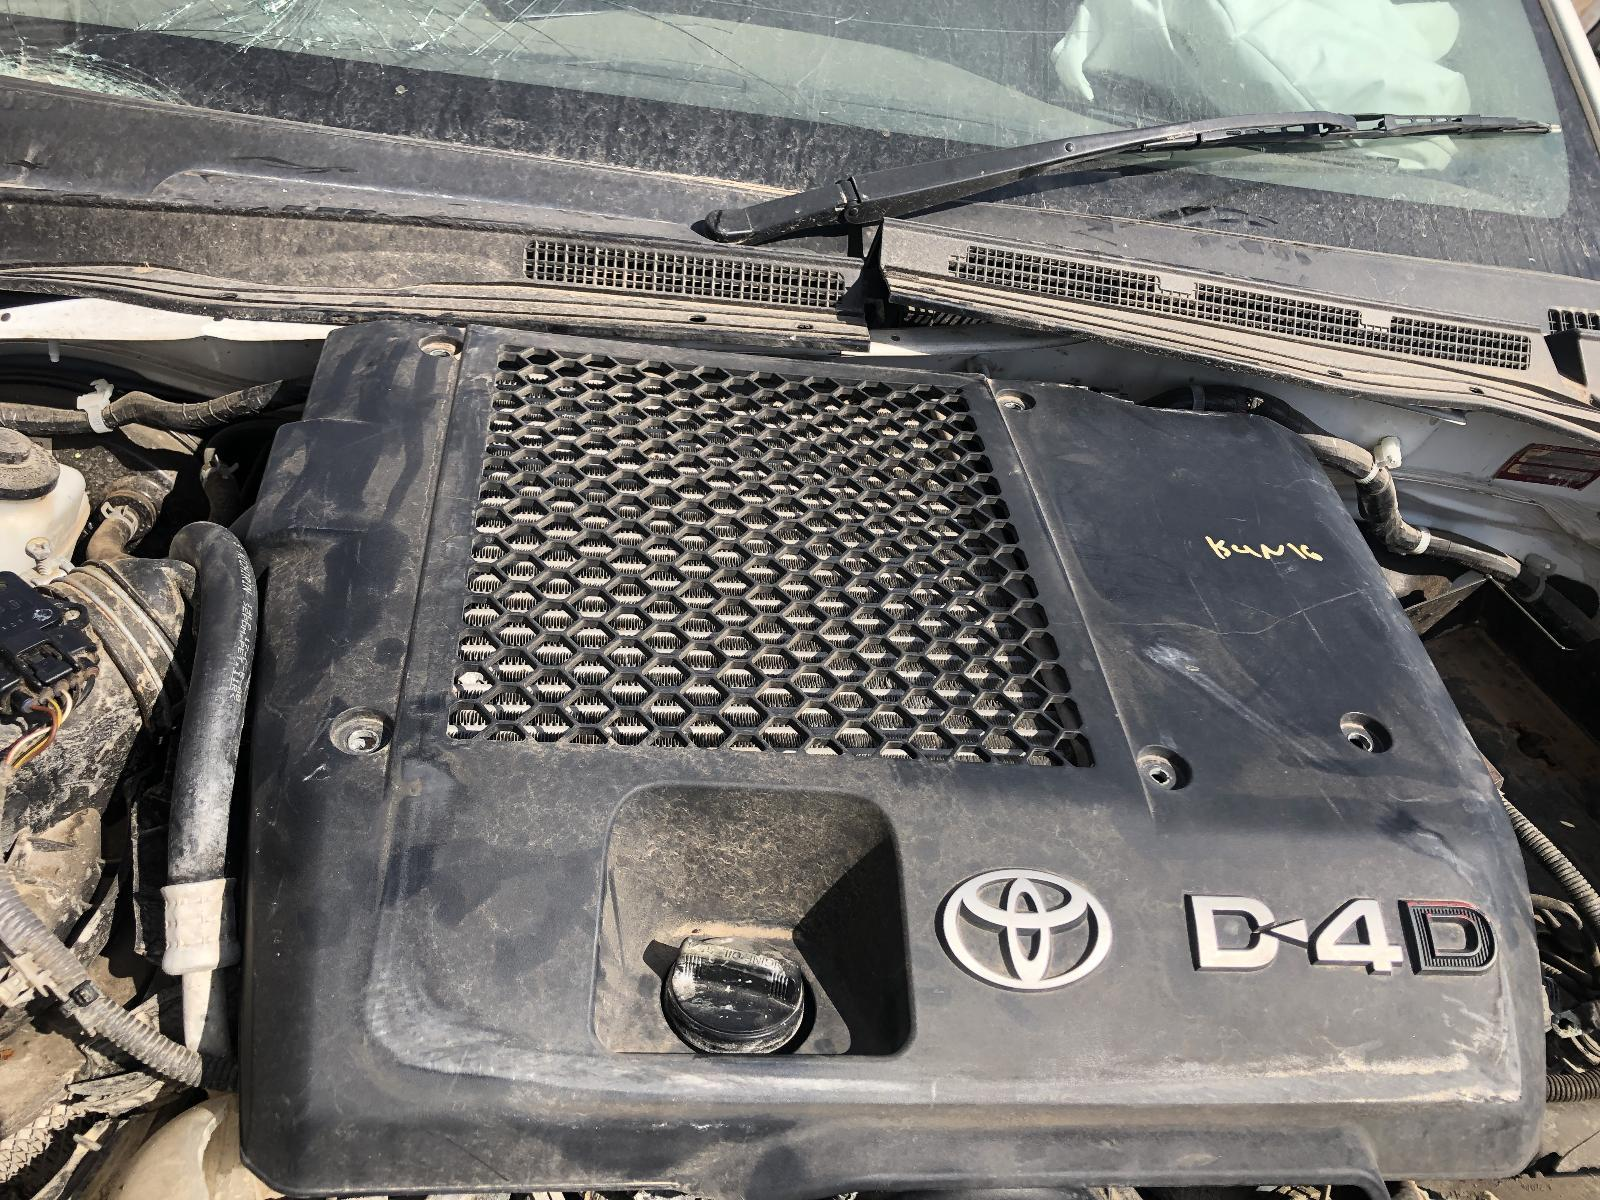 TOYOTA HILUX, Ecu, ENGINE ECU, 3.0, 1KD-FTV, DIESEL, AUTO, P/N 89661-0KC81, SEC SET (ECU/IMM/READER/KEY), 02/05-08/15